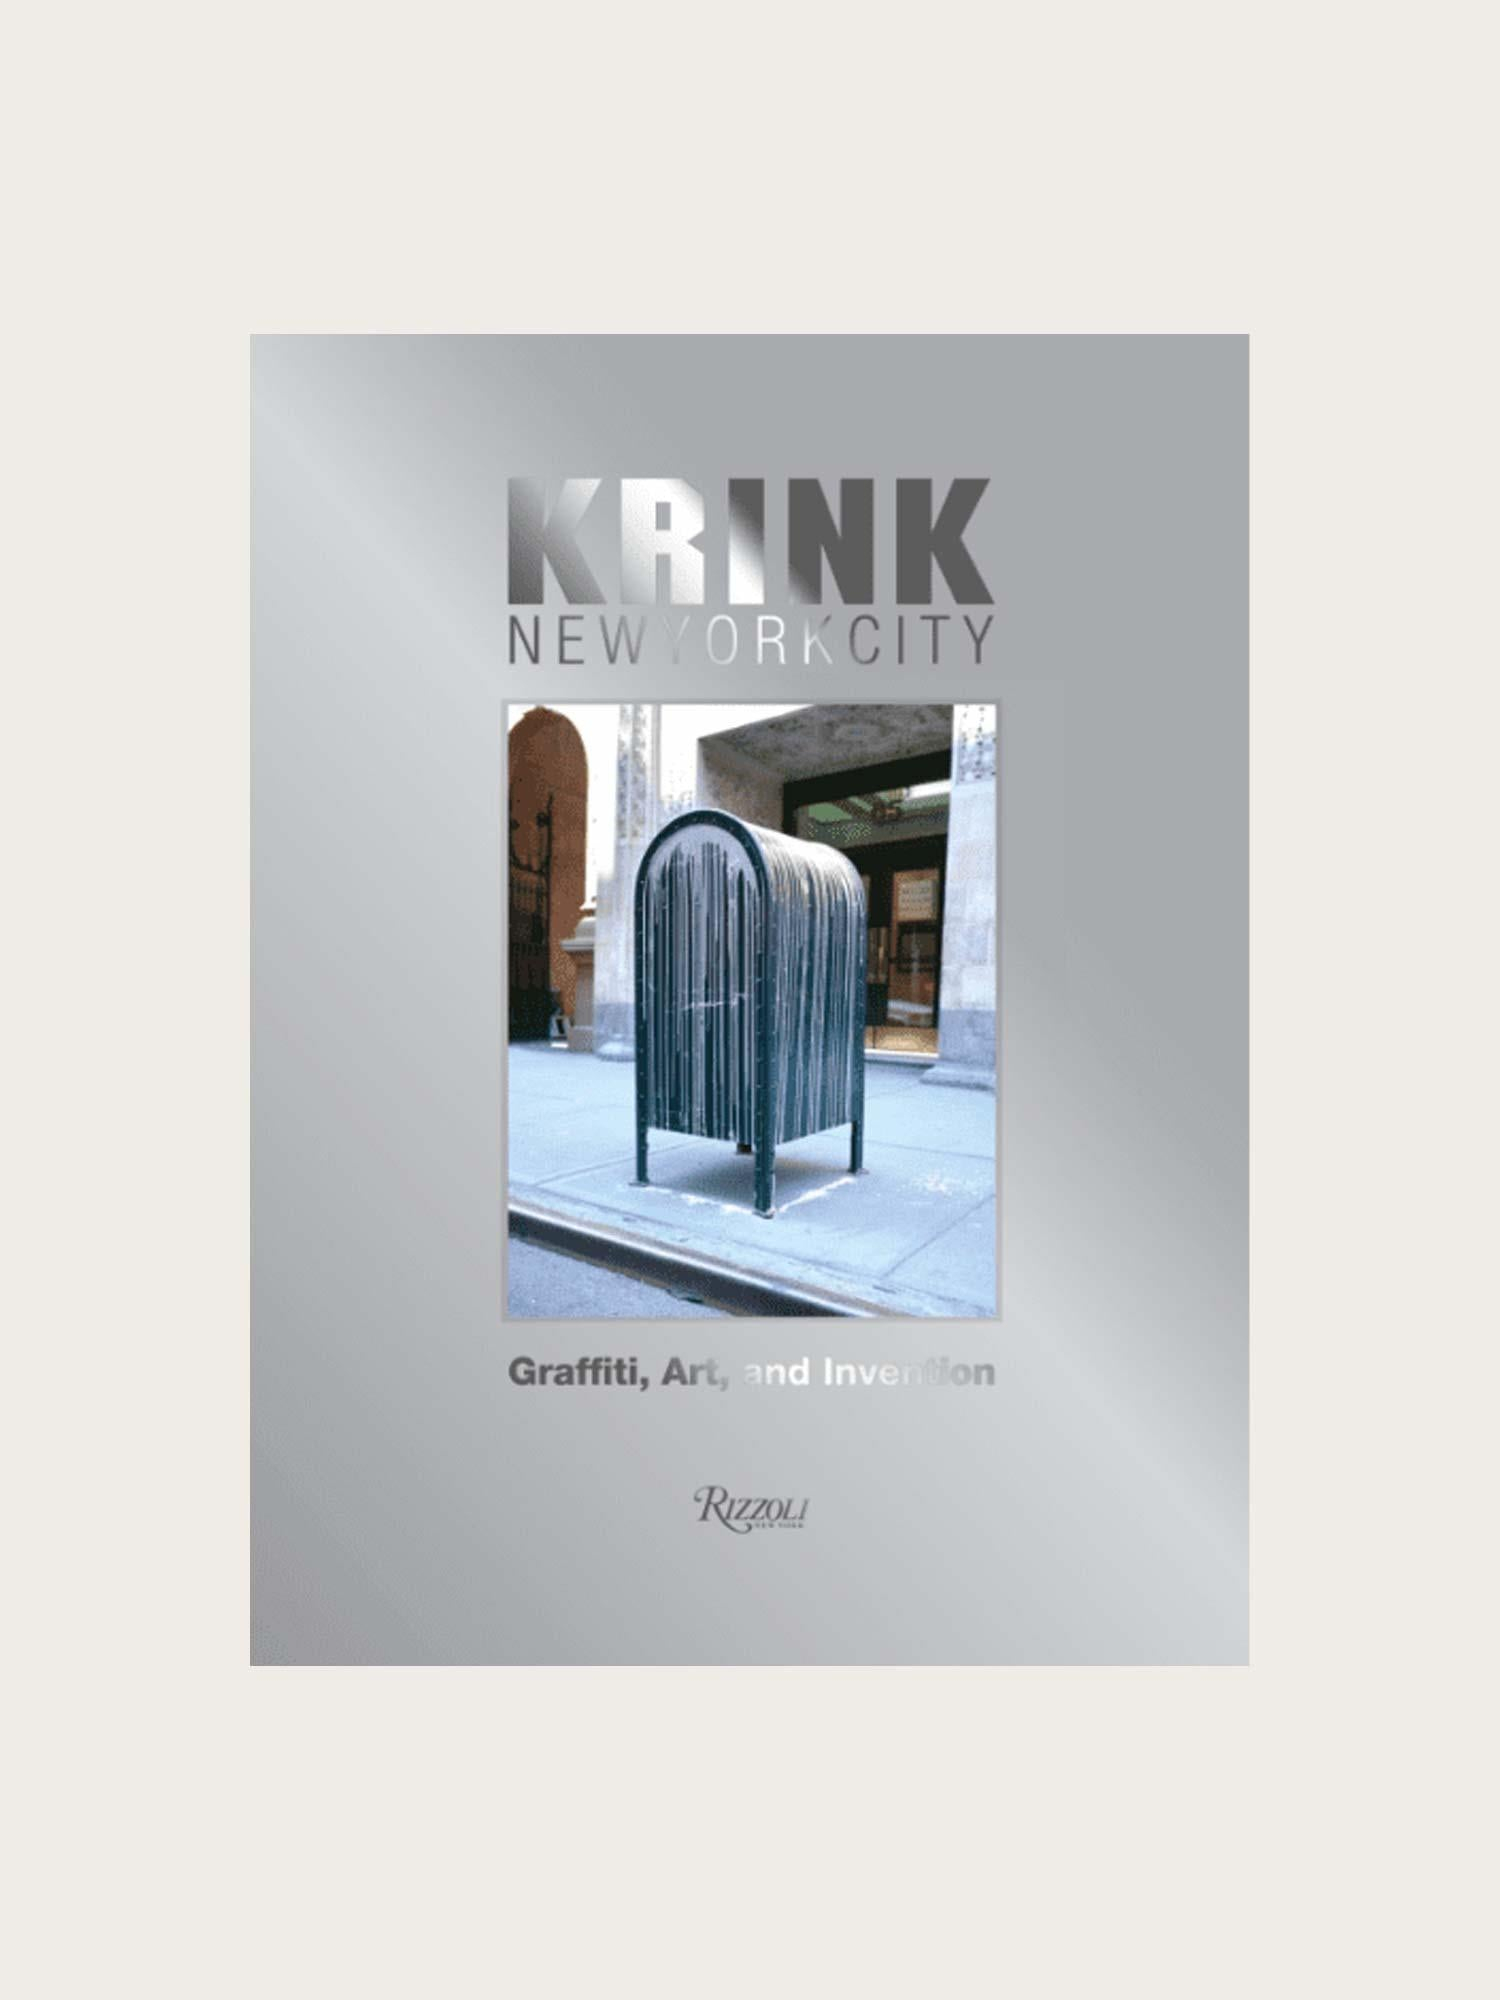 Krink - New York City